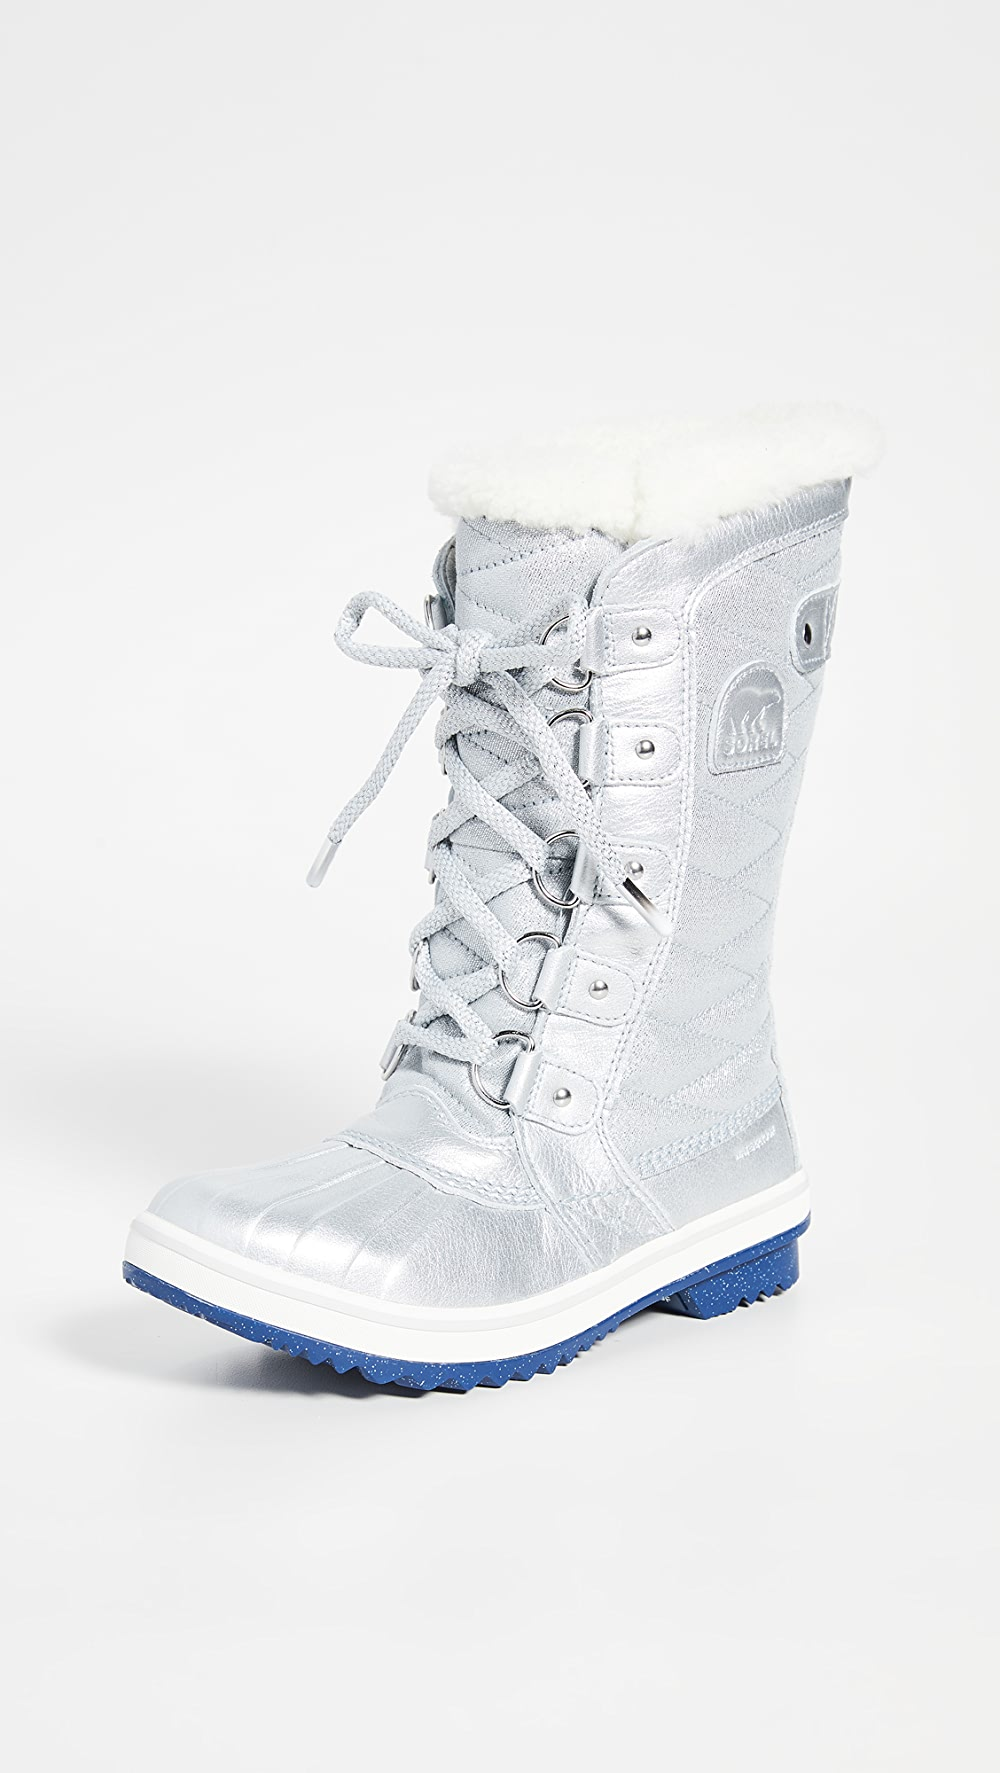 Genteel Sorel - X Disney Tofino Boots Providing Amenities For The People; Making Life Easier For The Population